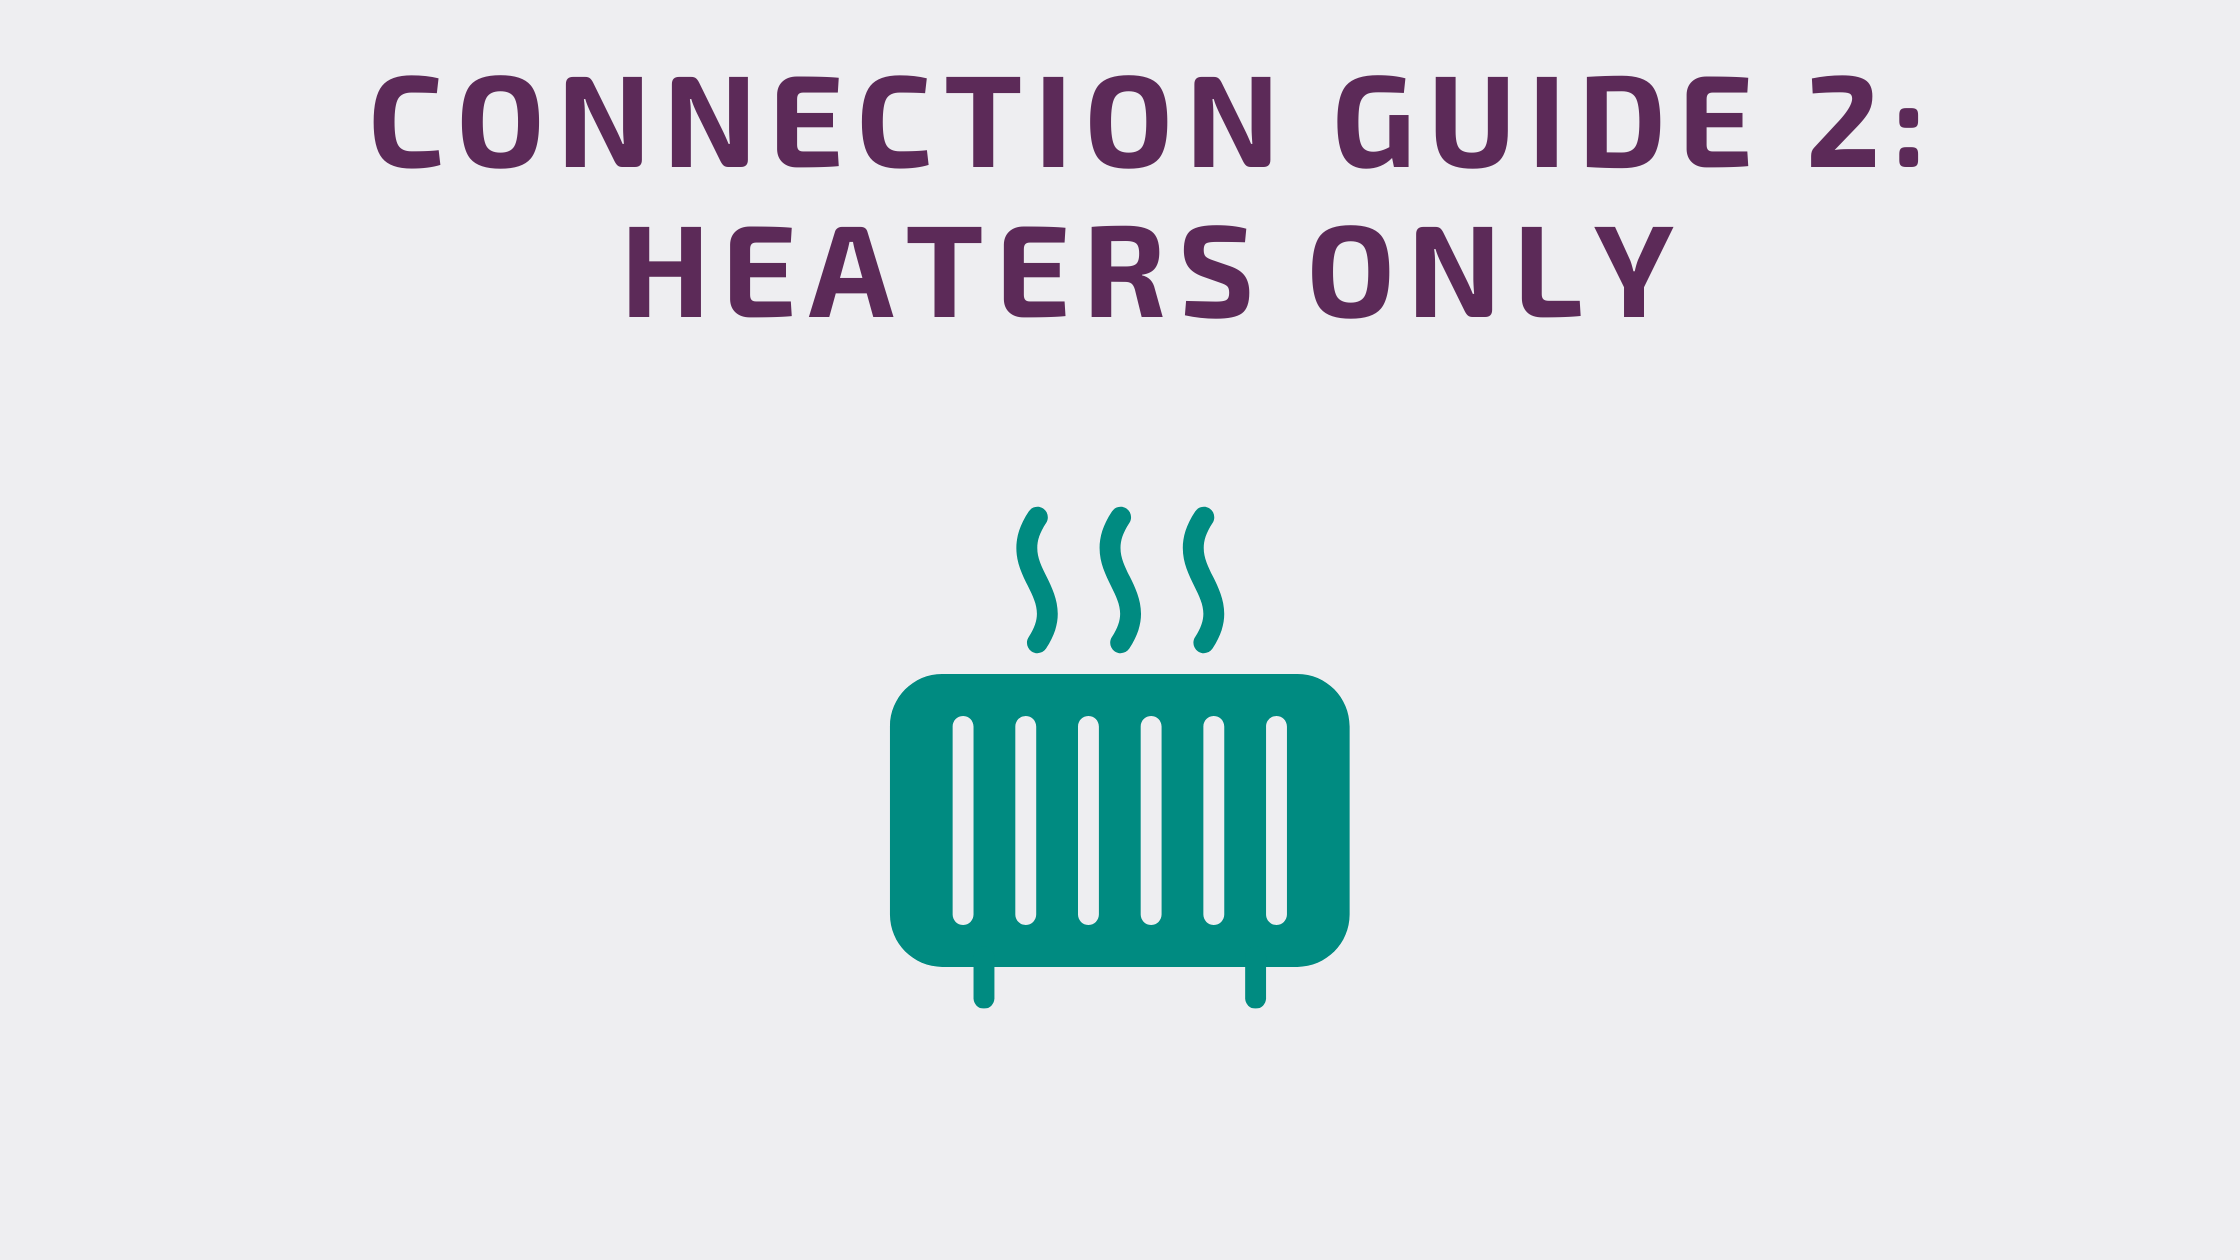 Connection Guide 2: Heaters Only